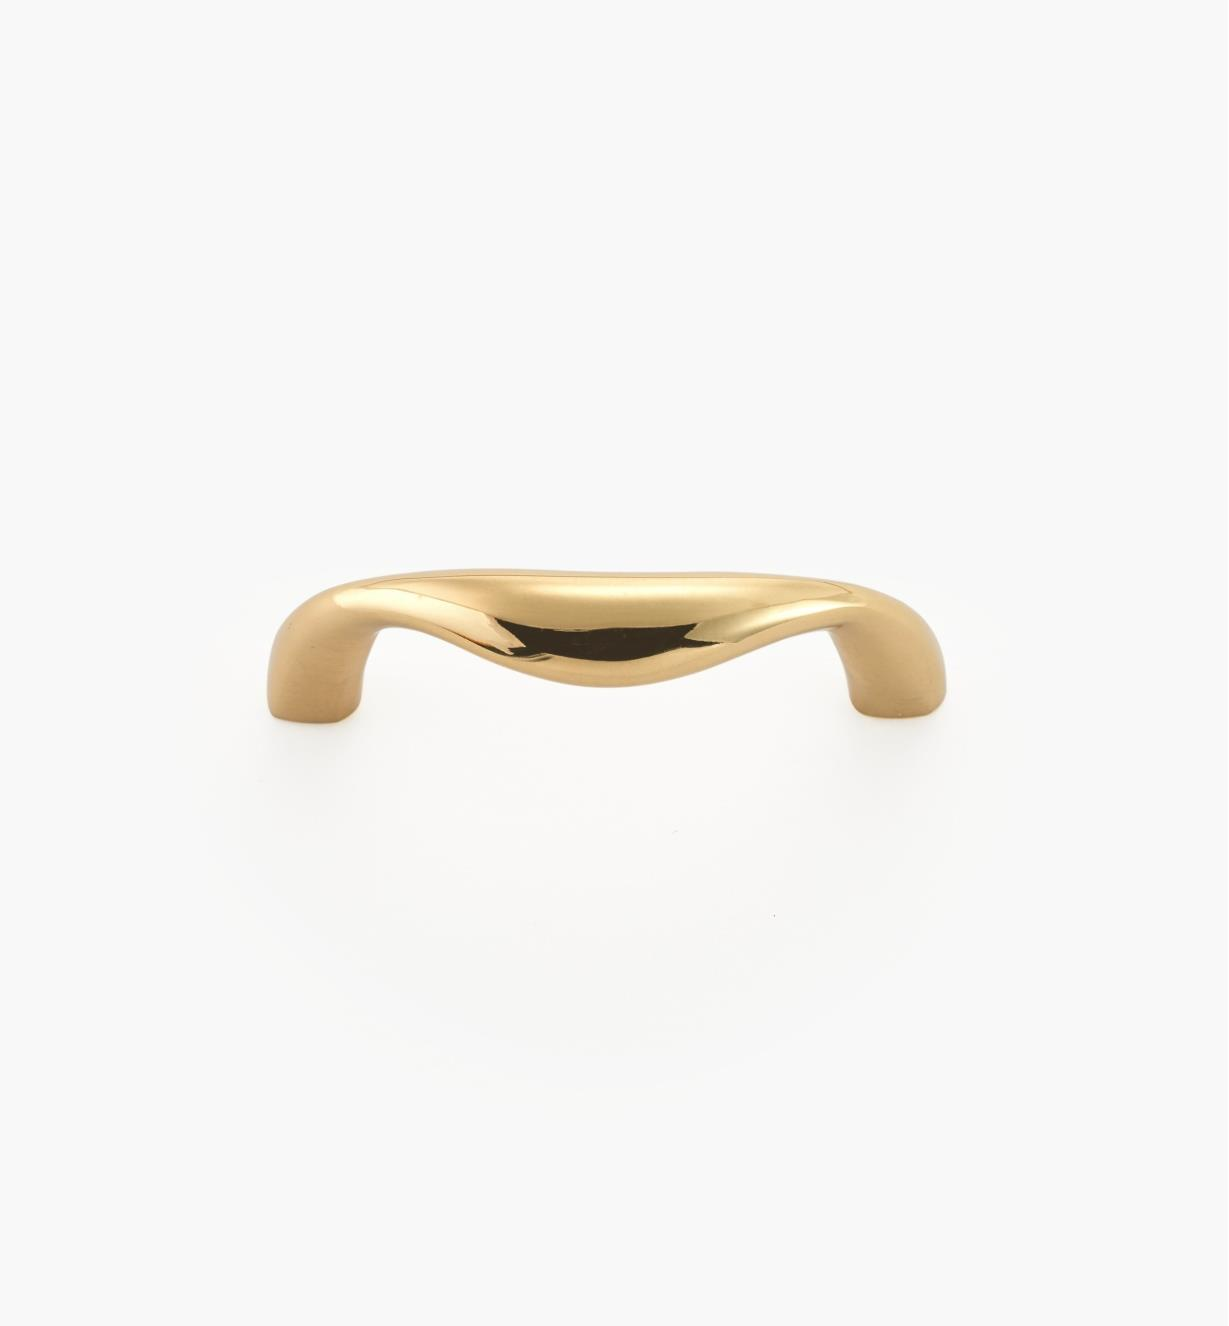 00W5860 - 64mm Polished Brass Handle